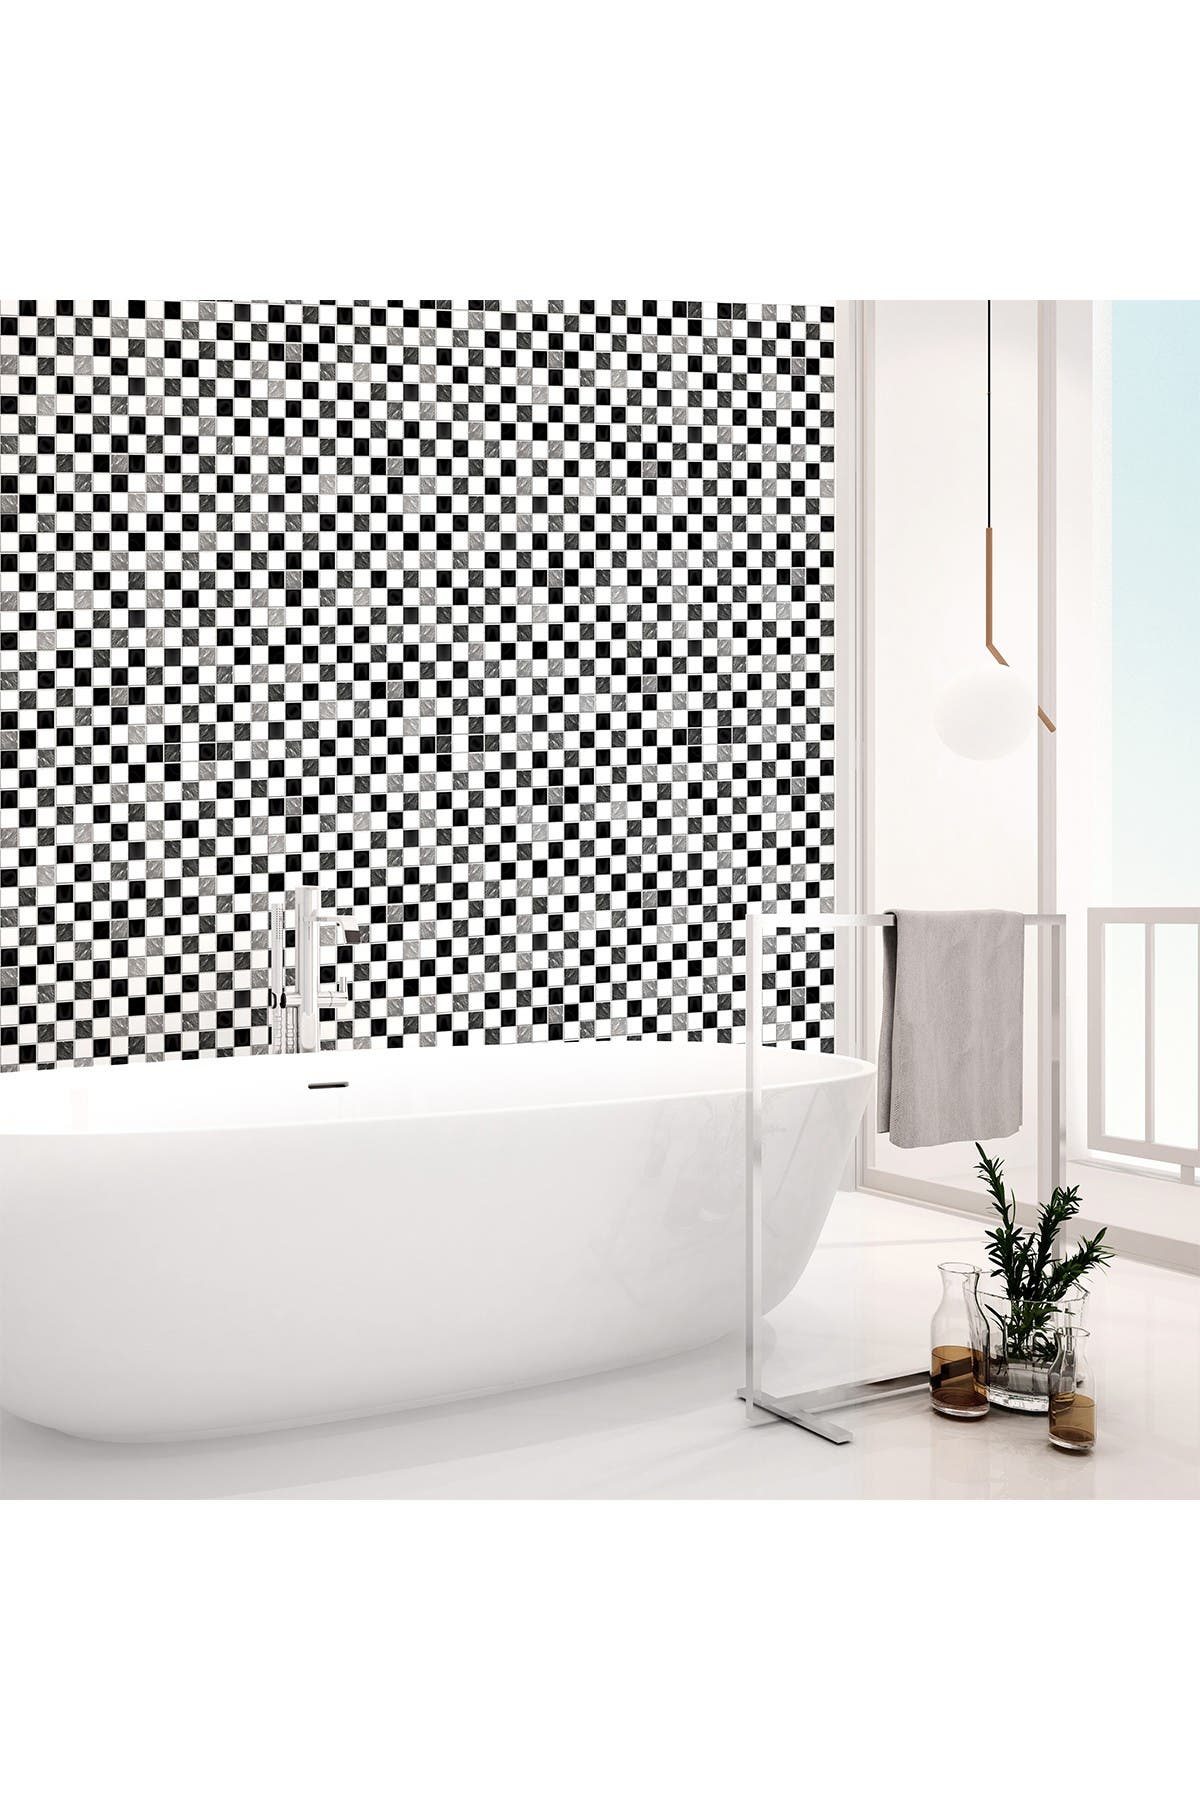 Image of WalPlus Black & White Marble Mosaic Tiles Decal